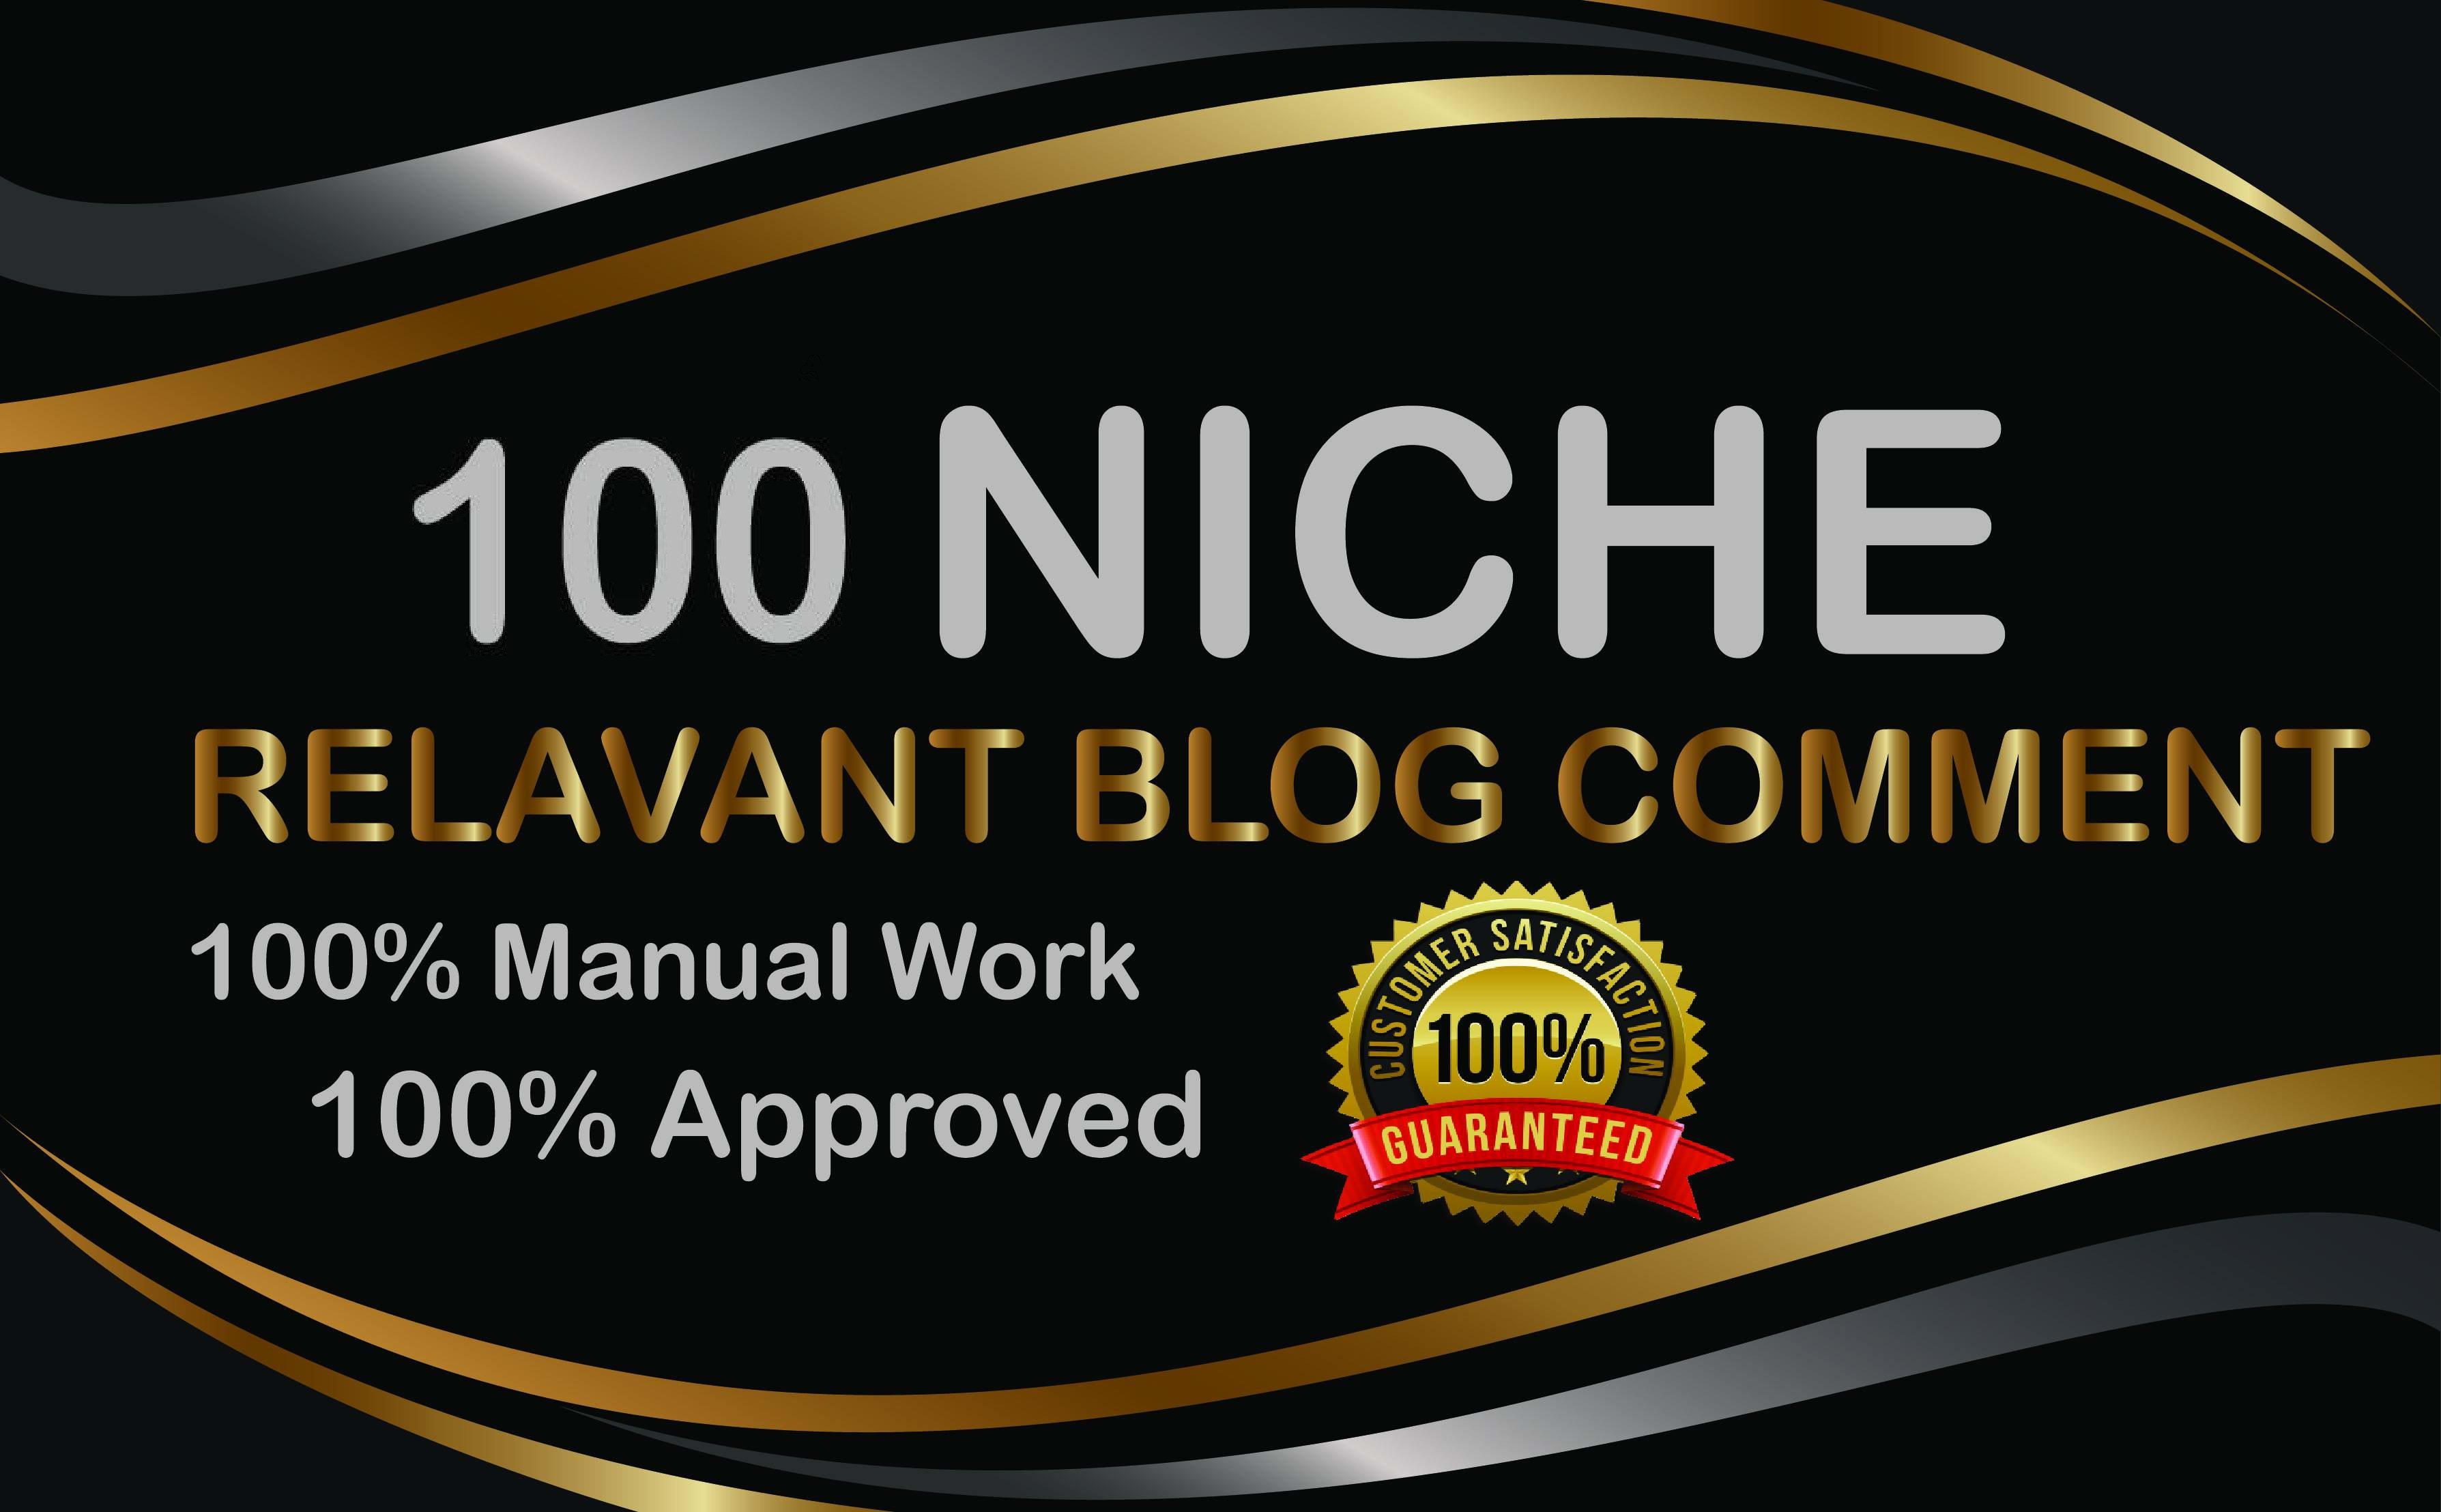 provide 100 niche relevant blog comments